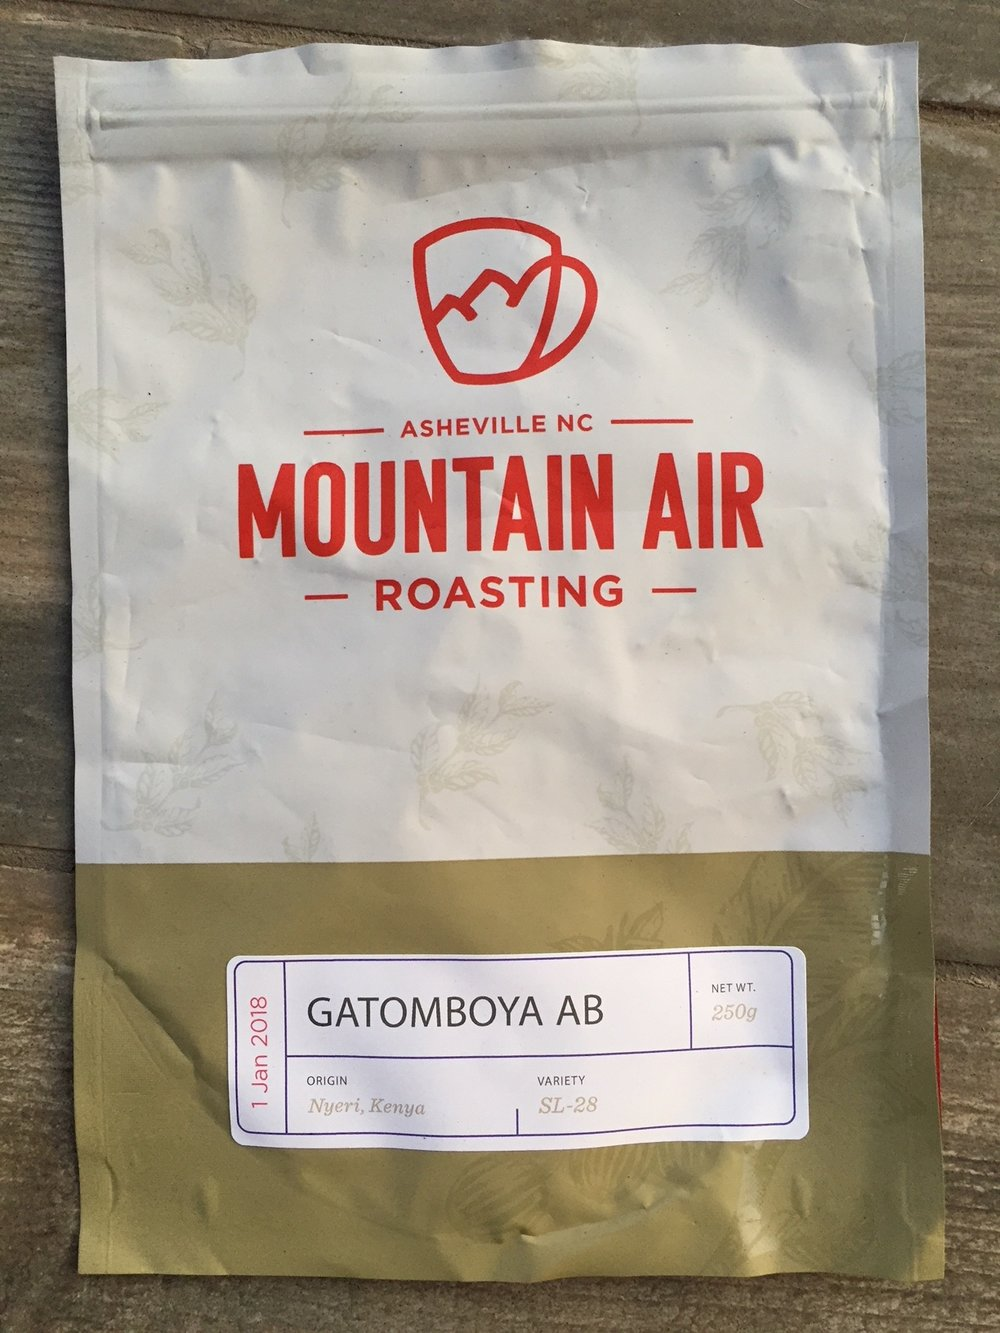 Mountain Air Roasting Gatomboya AB Kenya.JPG